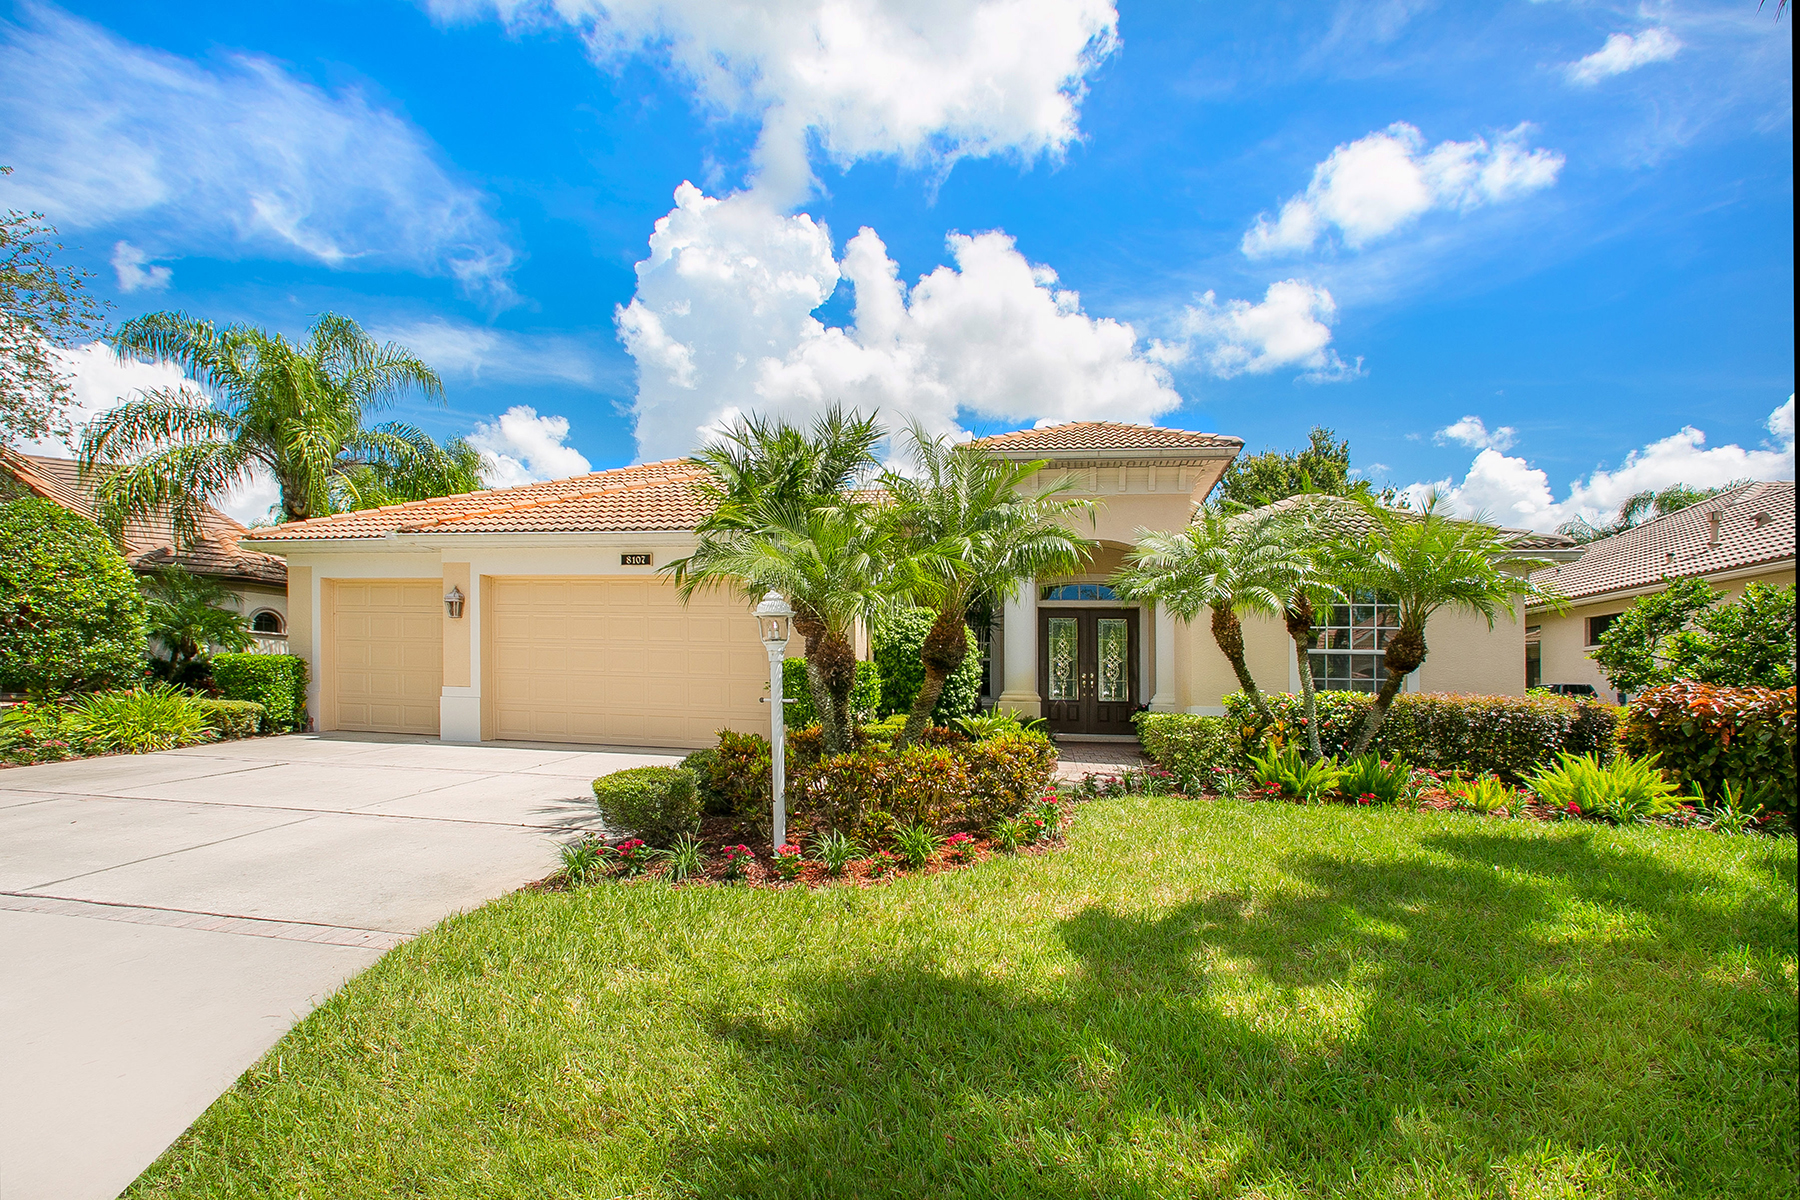 Single Family Home for Sale at LAKEWOOD RANCH COUNTRY CLUB 8107 Championship Ct Lakewood Ranch, Florida, 34202 United States